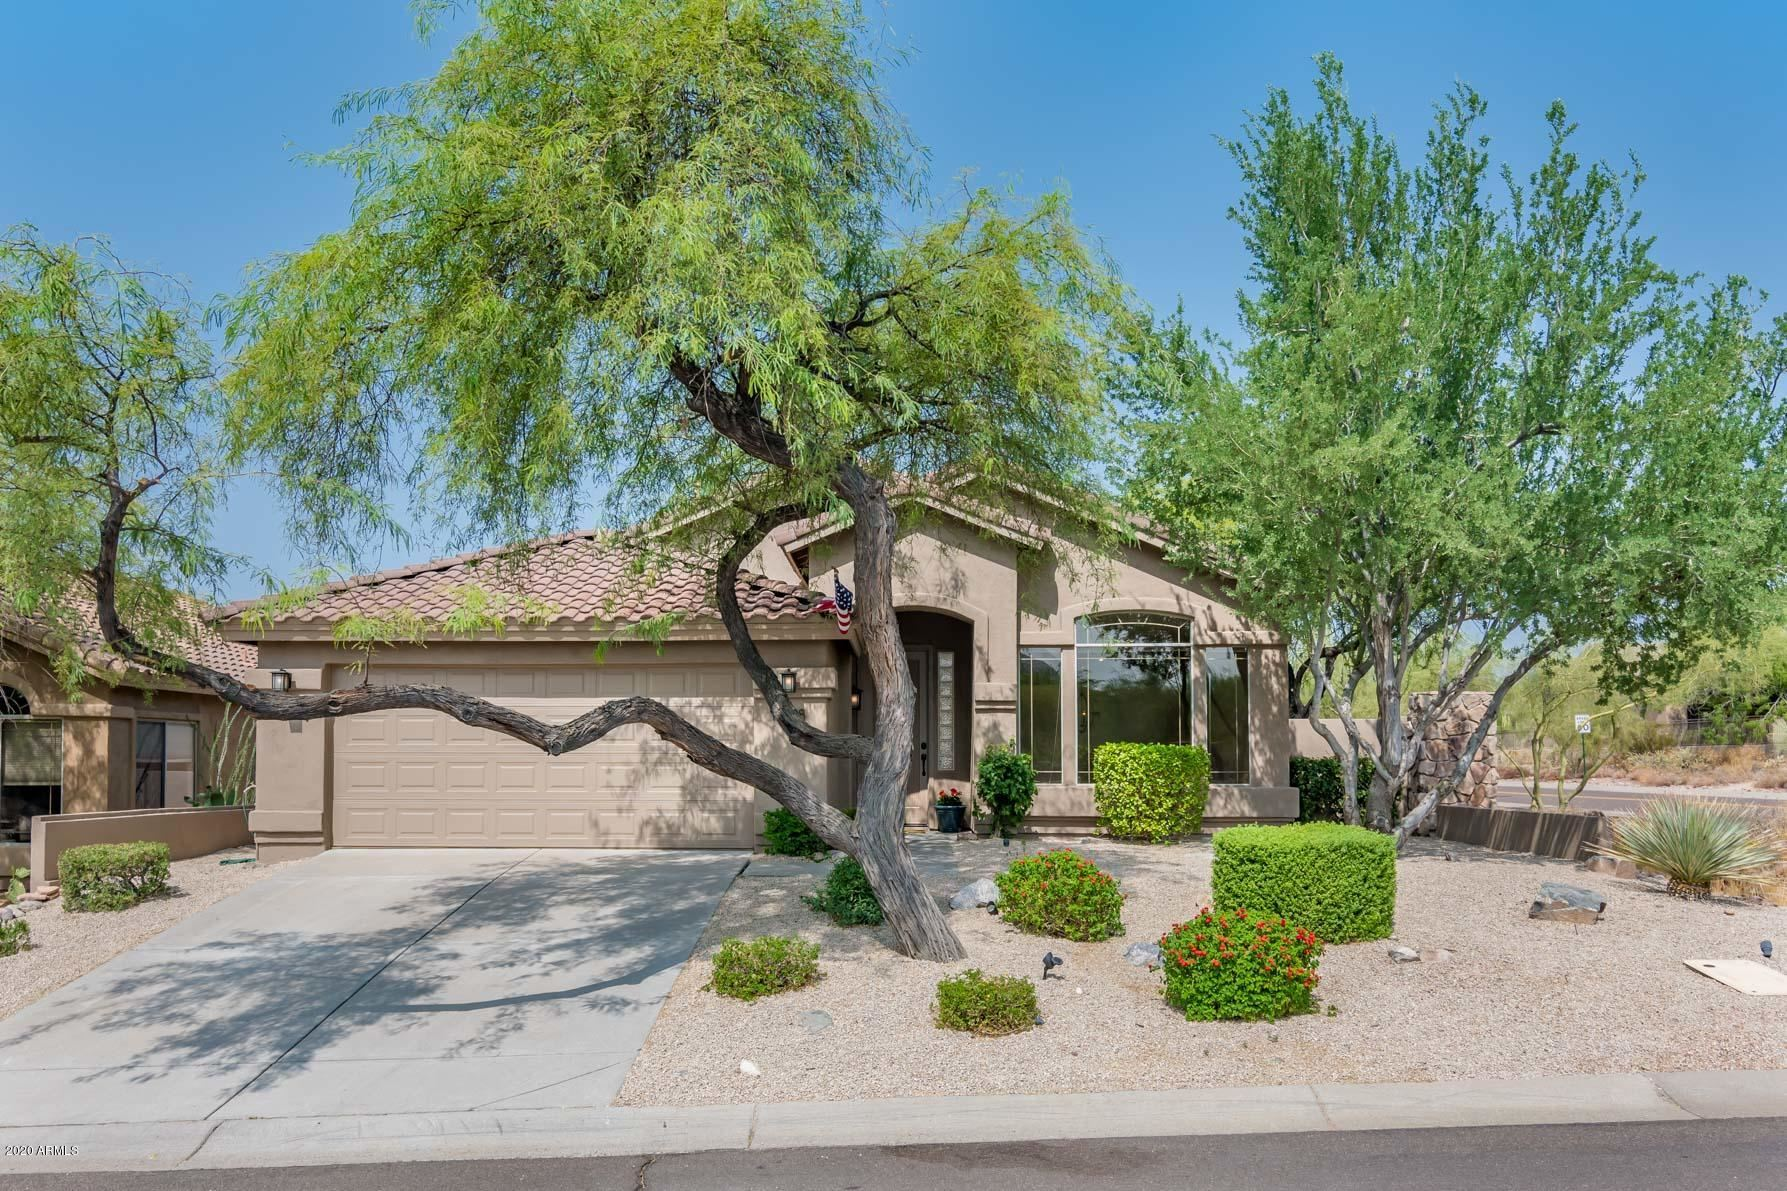 10618 E MORNING STAR Drive, Scottsdale, AZ 85255 - MLS#: 6134885